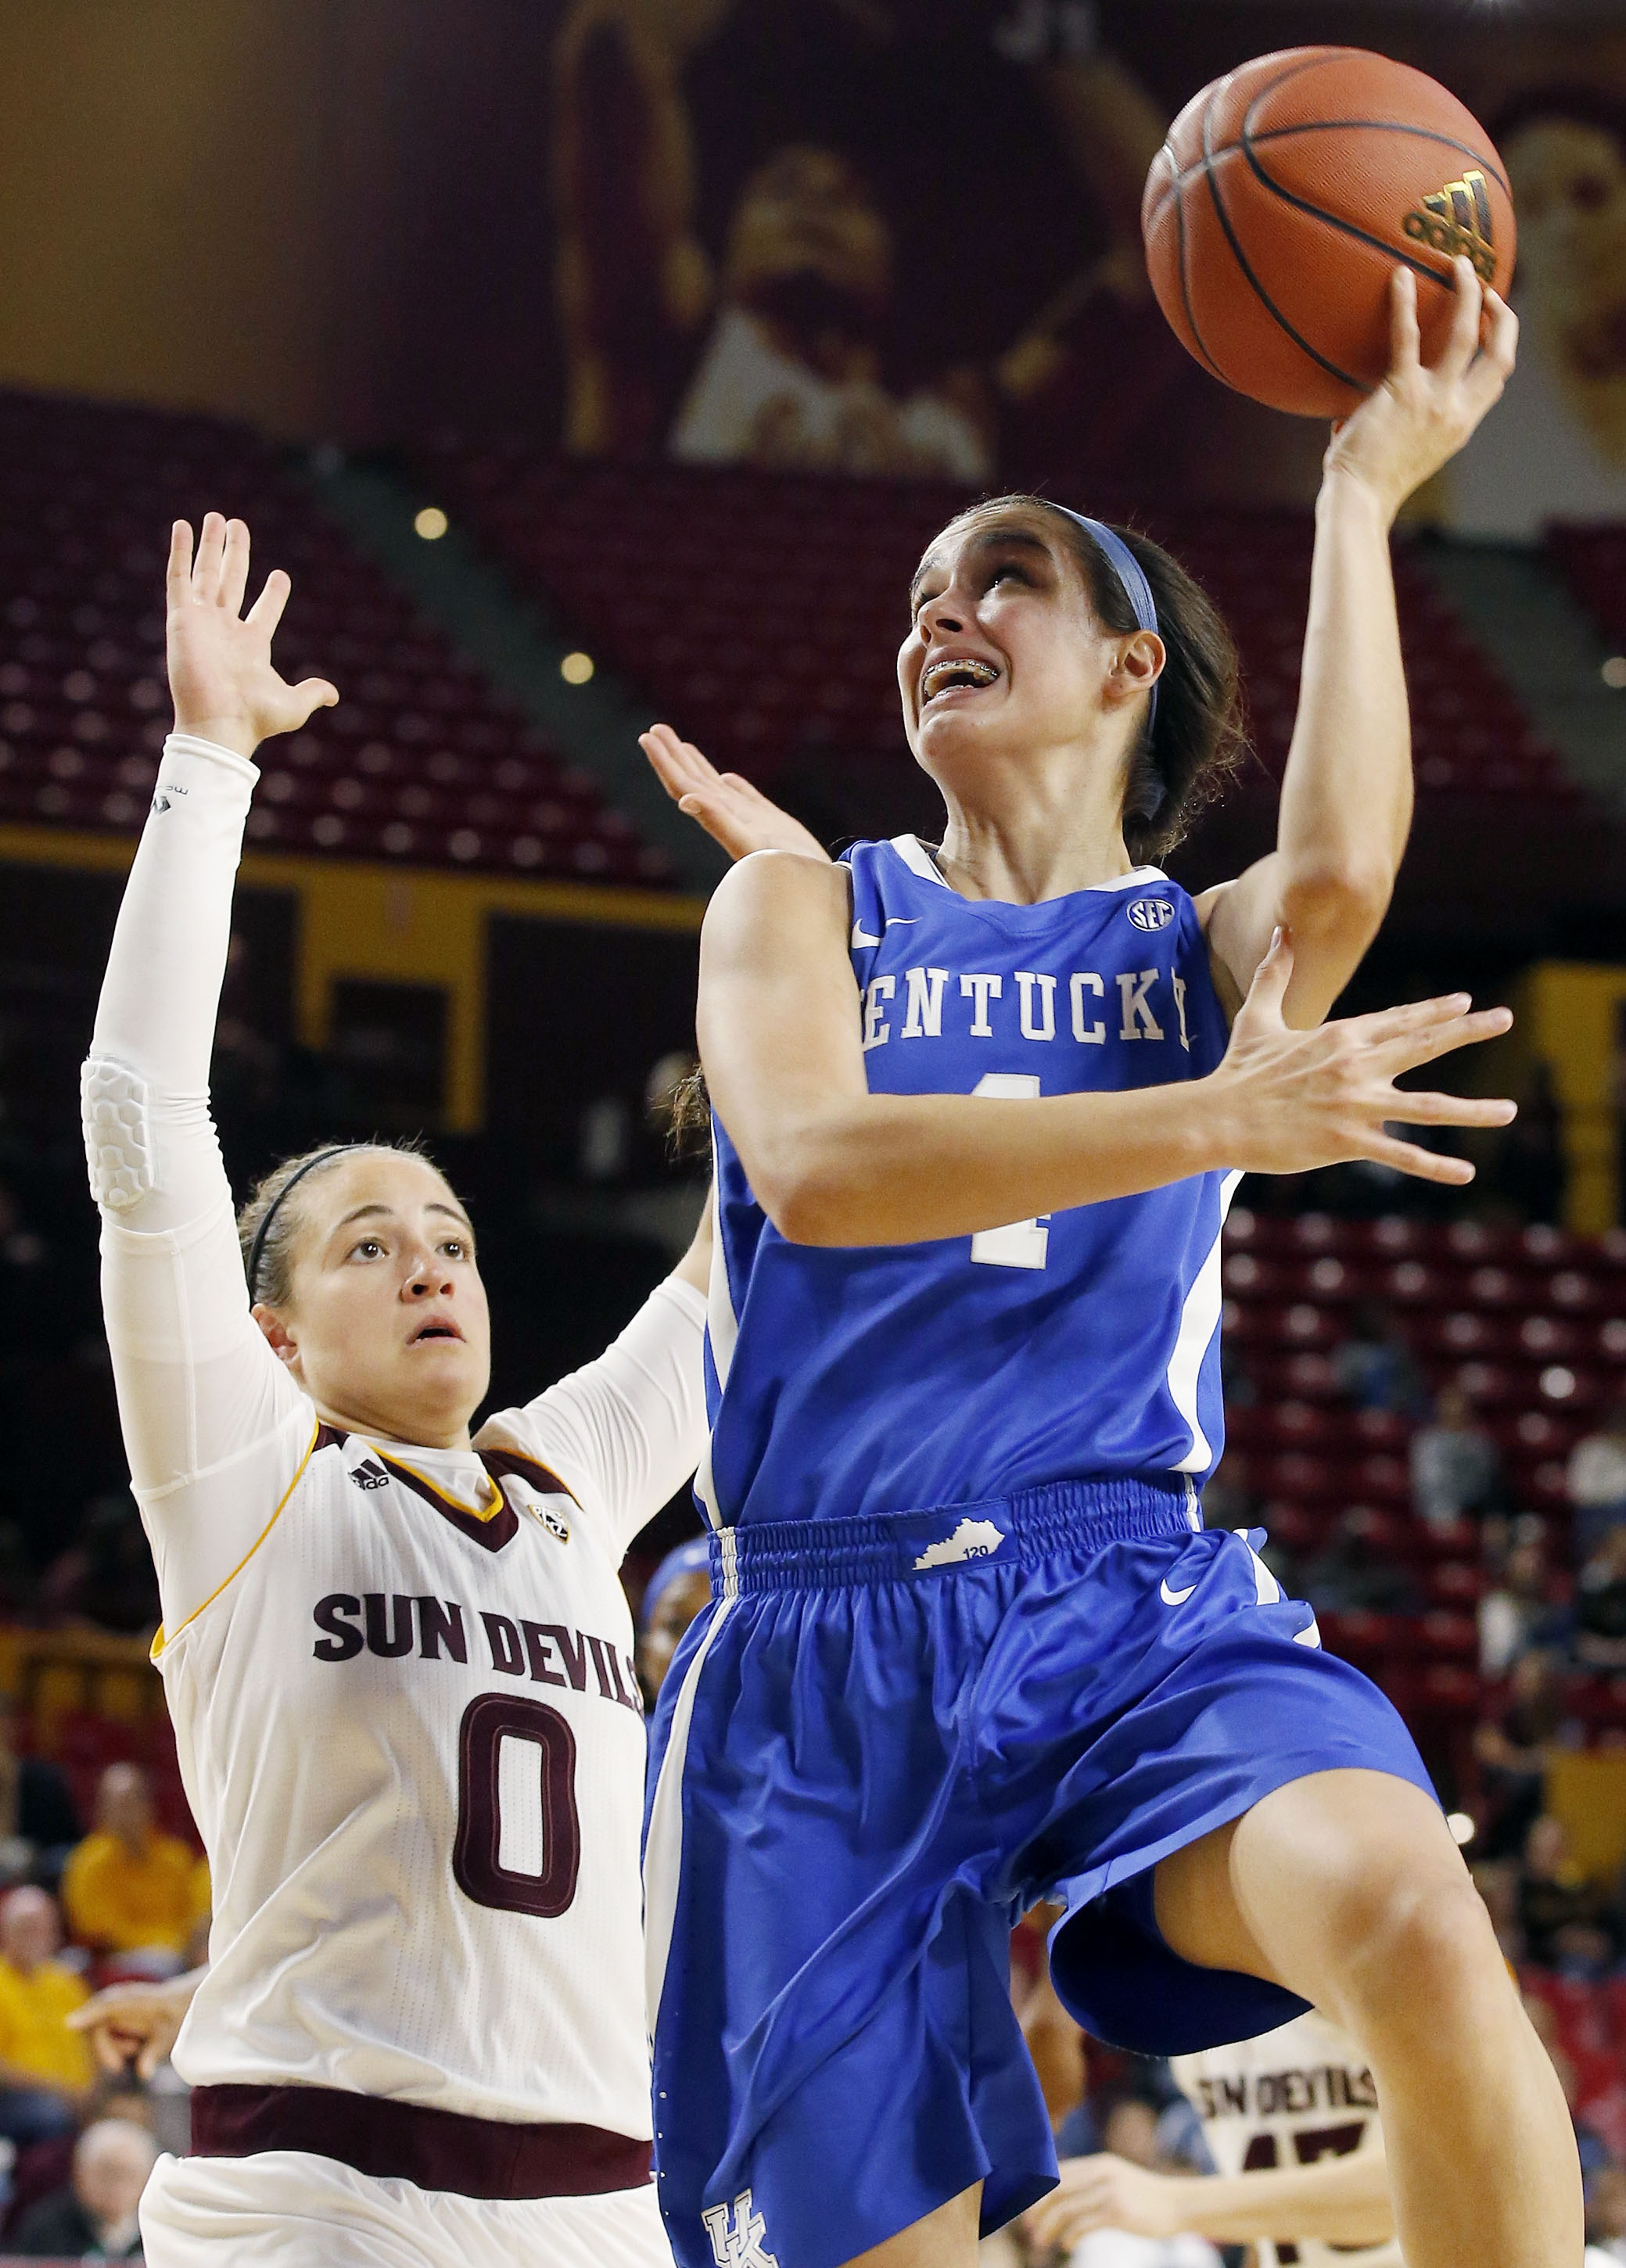 FILE - This Nov. 15, 2015 file photo shows Kentucky's Maci Morris, right, trying to get off a shot as Arizona State's Katie Hempen (0) defends during the first half of an NCAA college basketball game in Tempe, Ariz. Morris thought she would spend most of